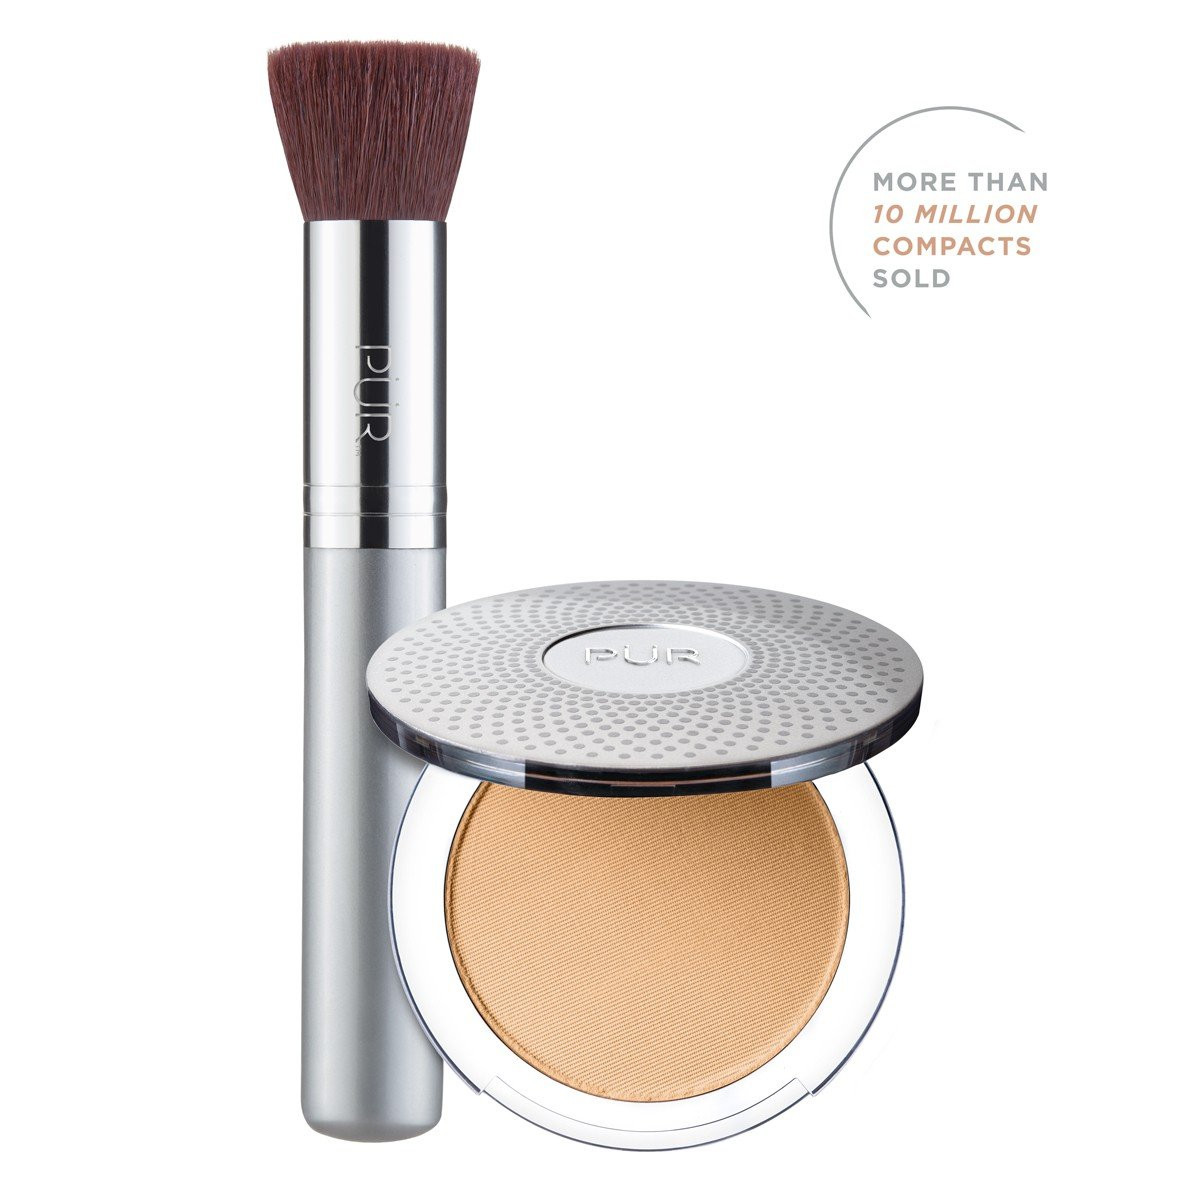 TRY PÜR! 4-in-1 Pressed Mineral Makeup and Brush Kit in Light Tan